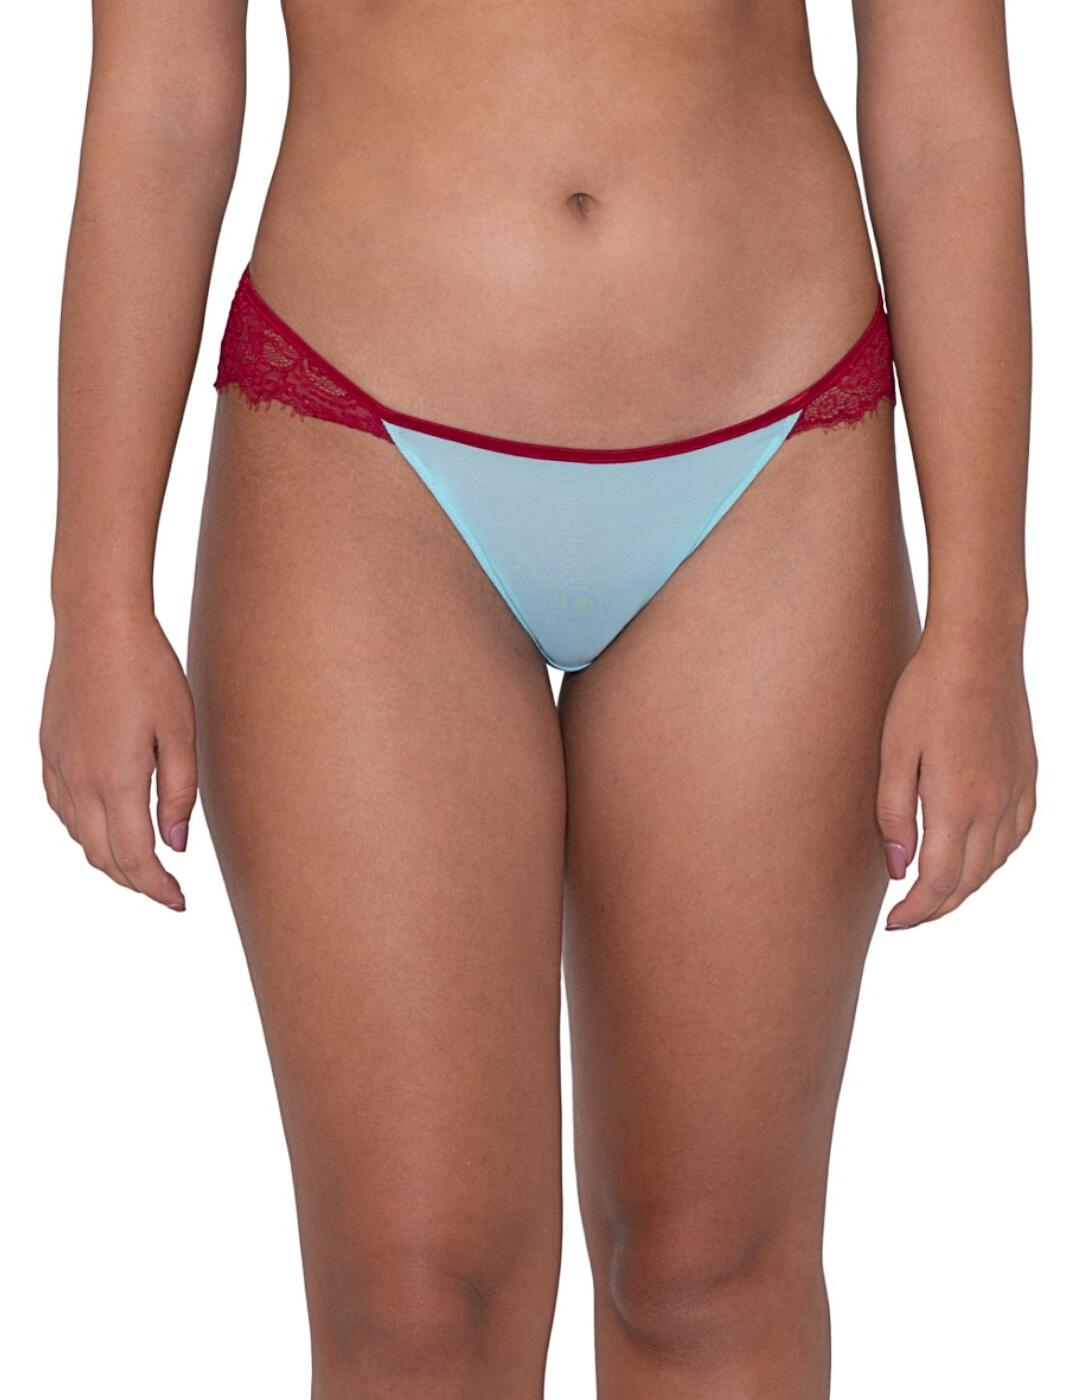 CK028202 Curvy Kate Lifestyle Lace Brazilian Brief - CK028202 Blue/Red